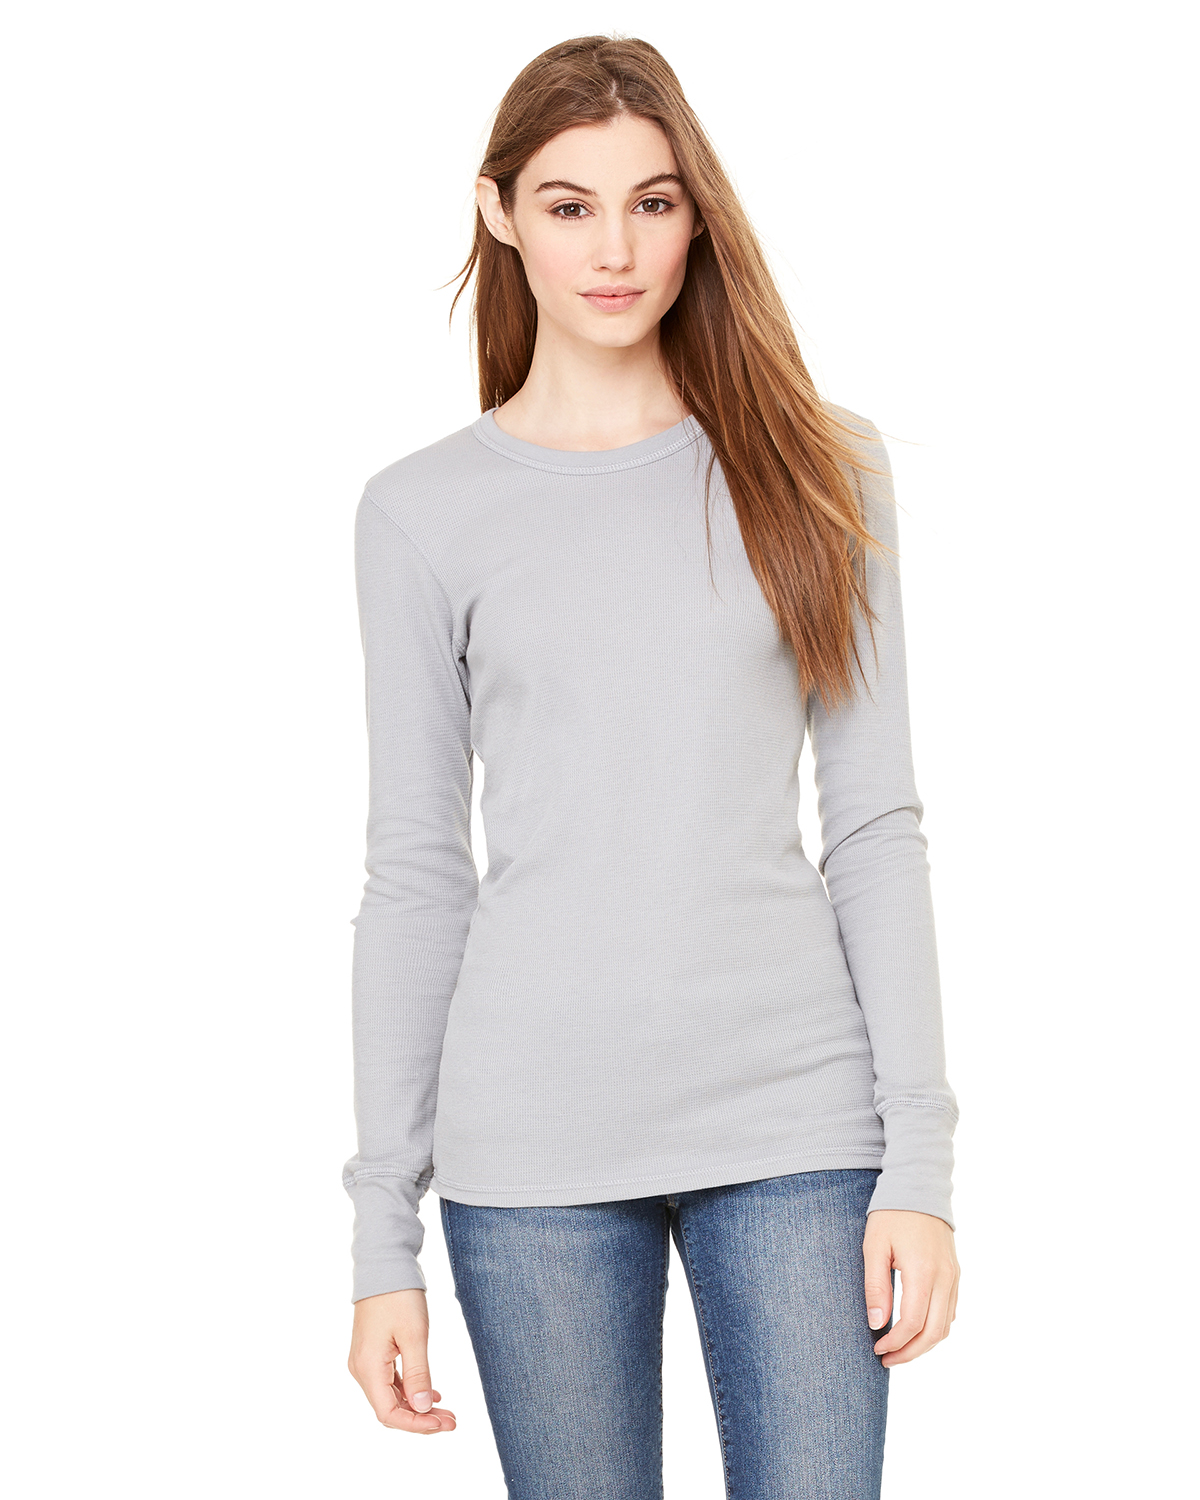 bella 8500 Ladies' Irene Thermal Shirt